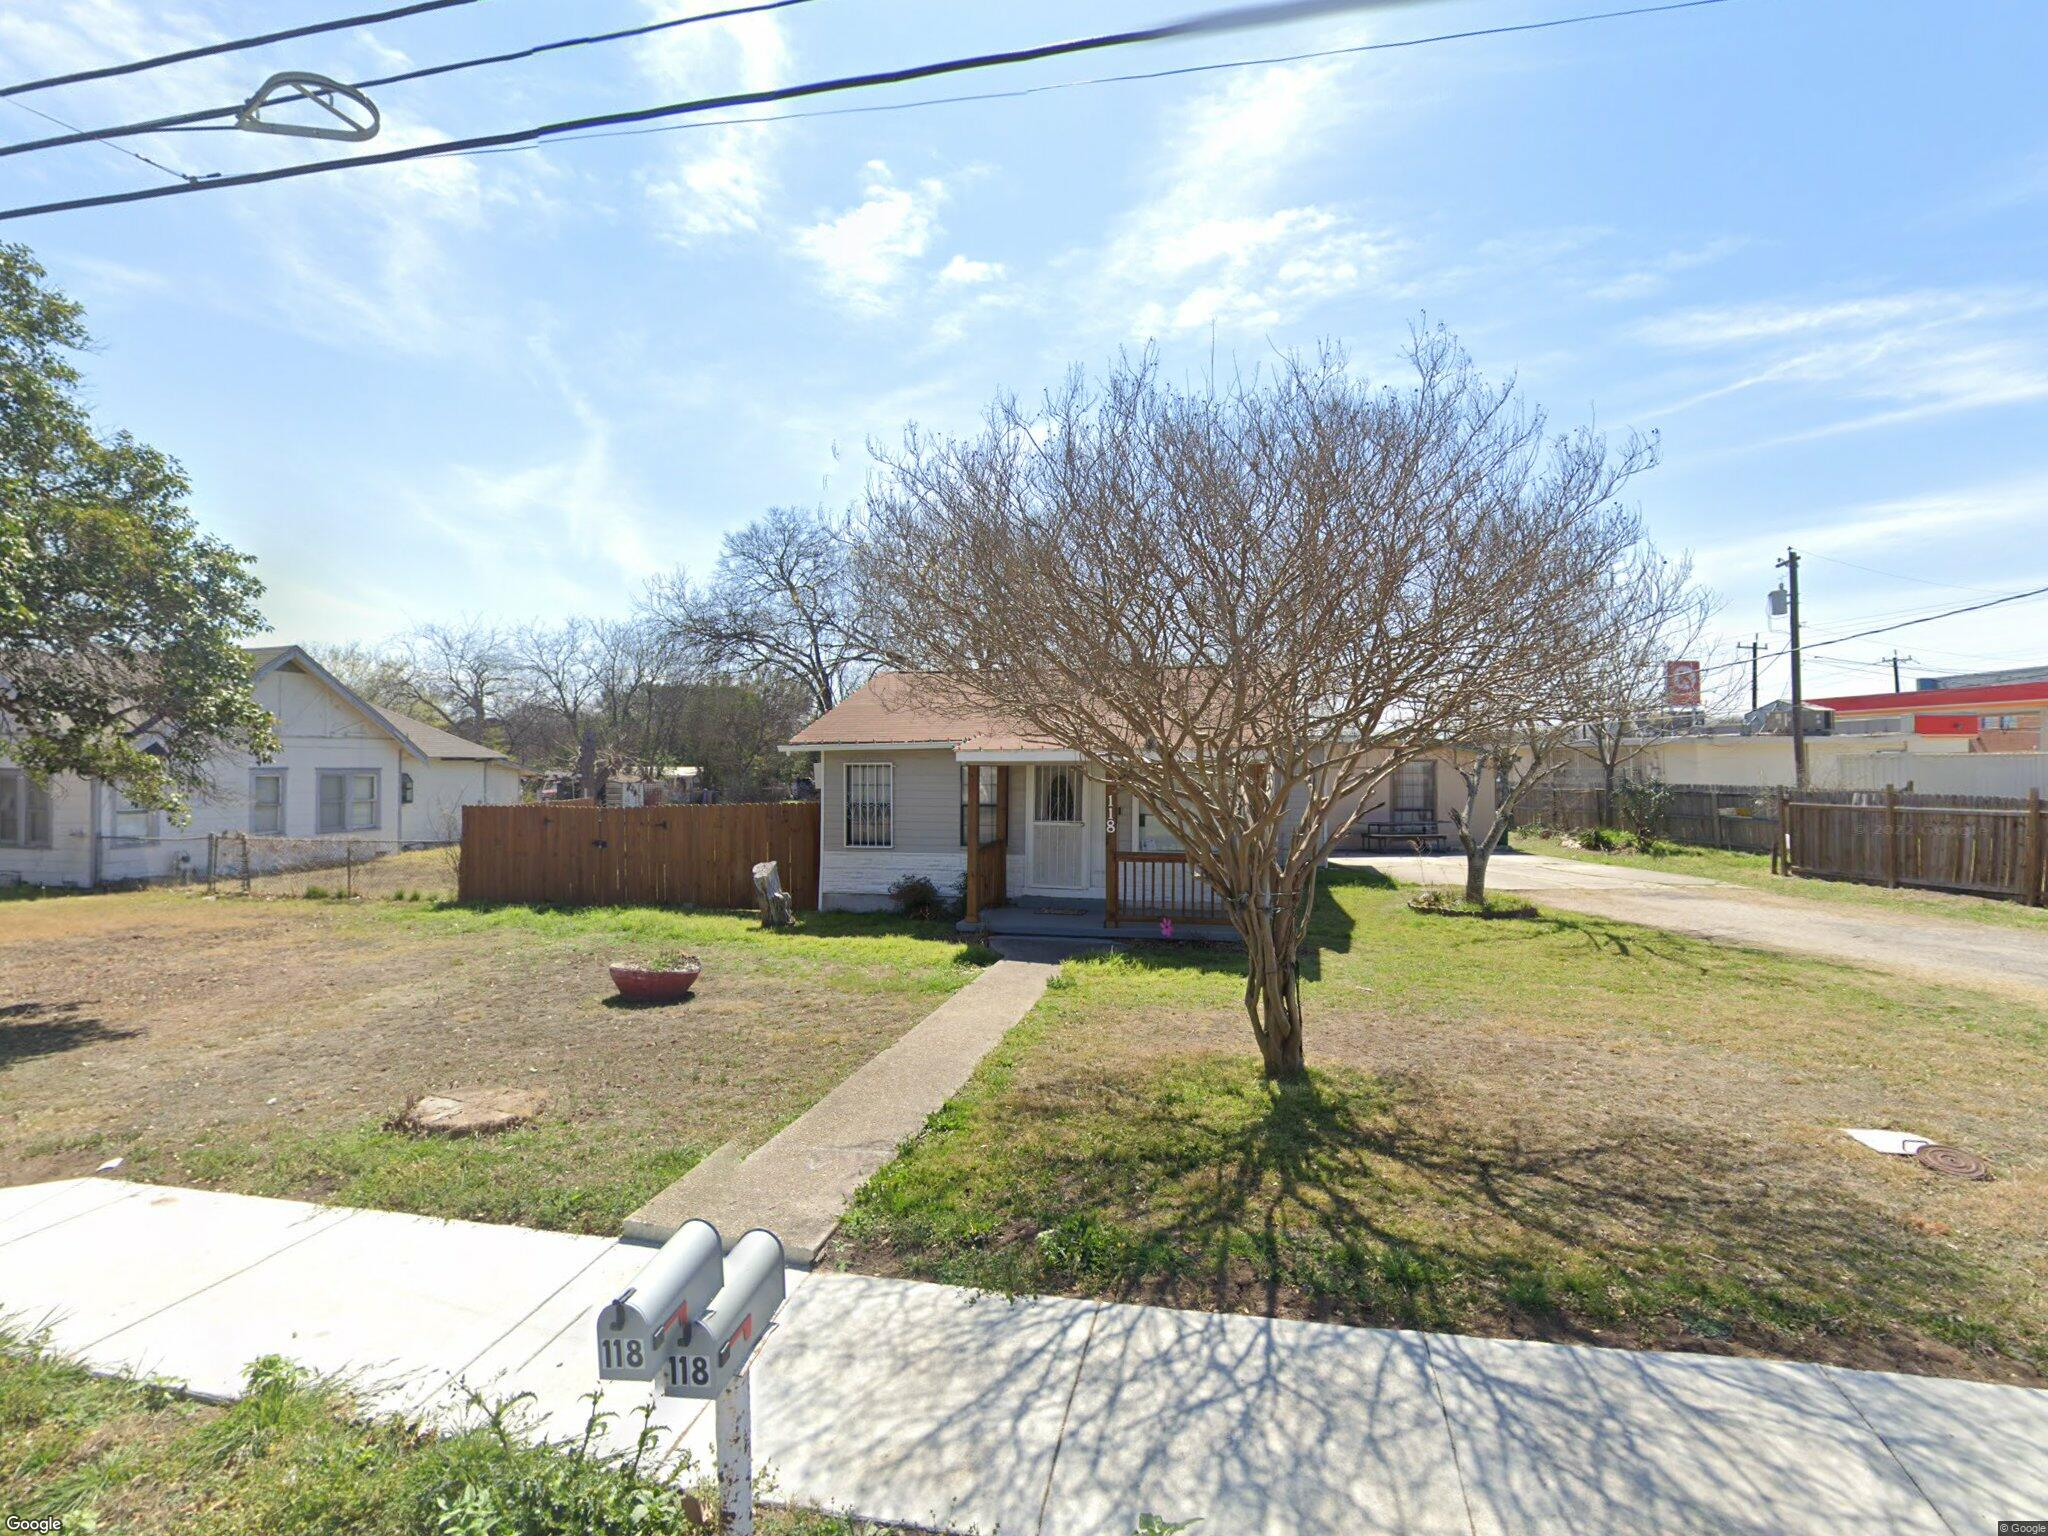 118 E Harding Blvd, San Antonio, TX 78214 | Trulia